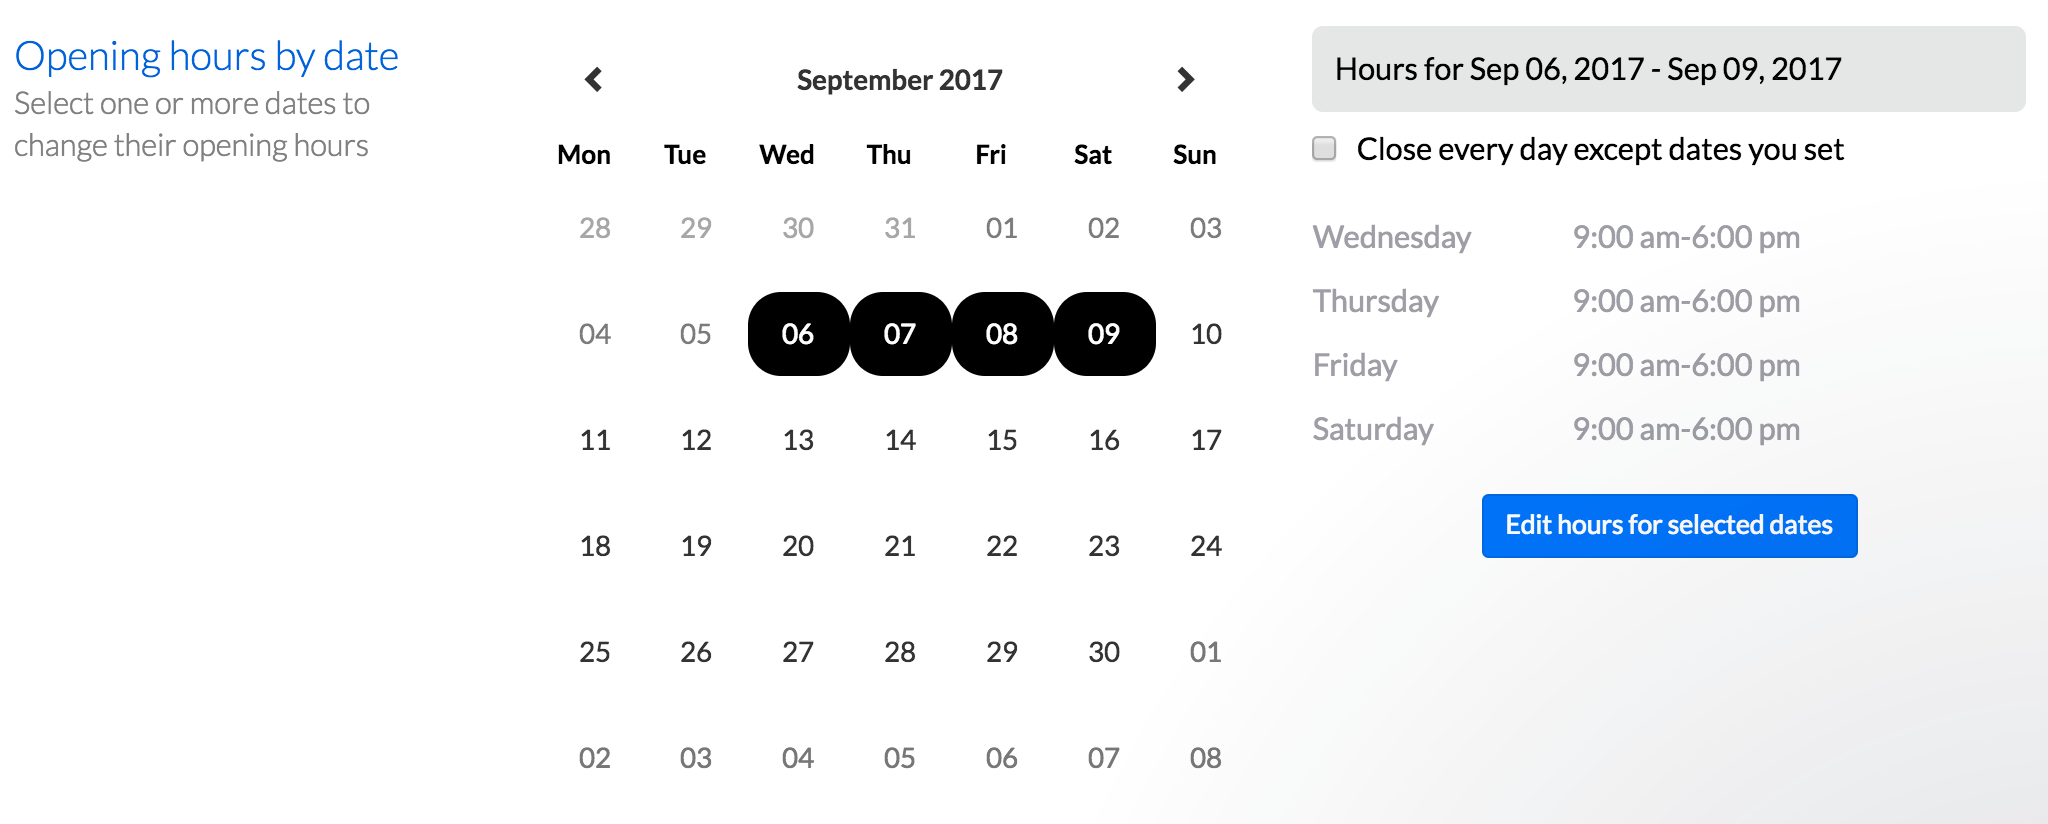 detailed hours